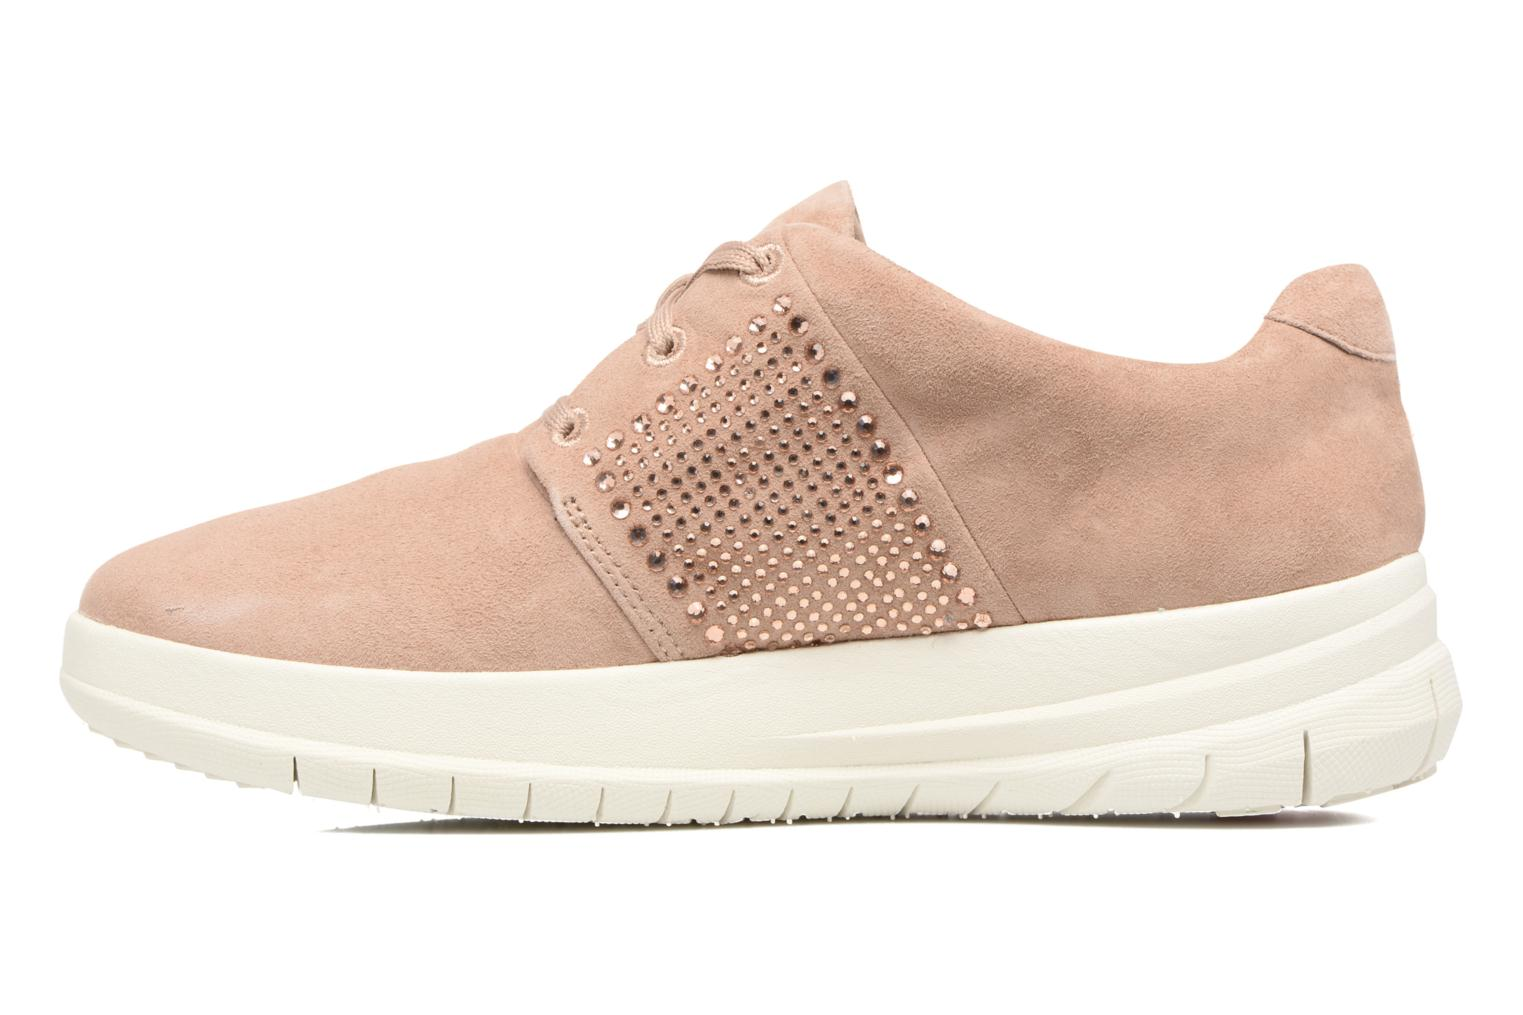 Sporty-Pop X CRYSTAL Sneaker Mocha